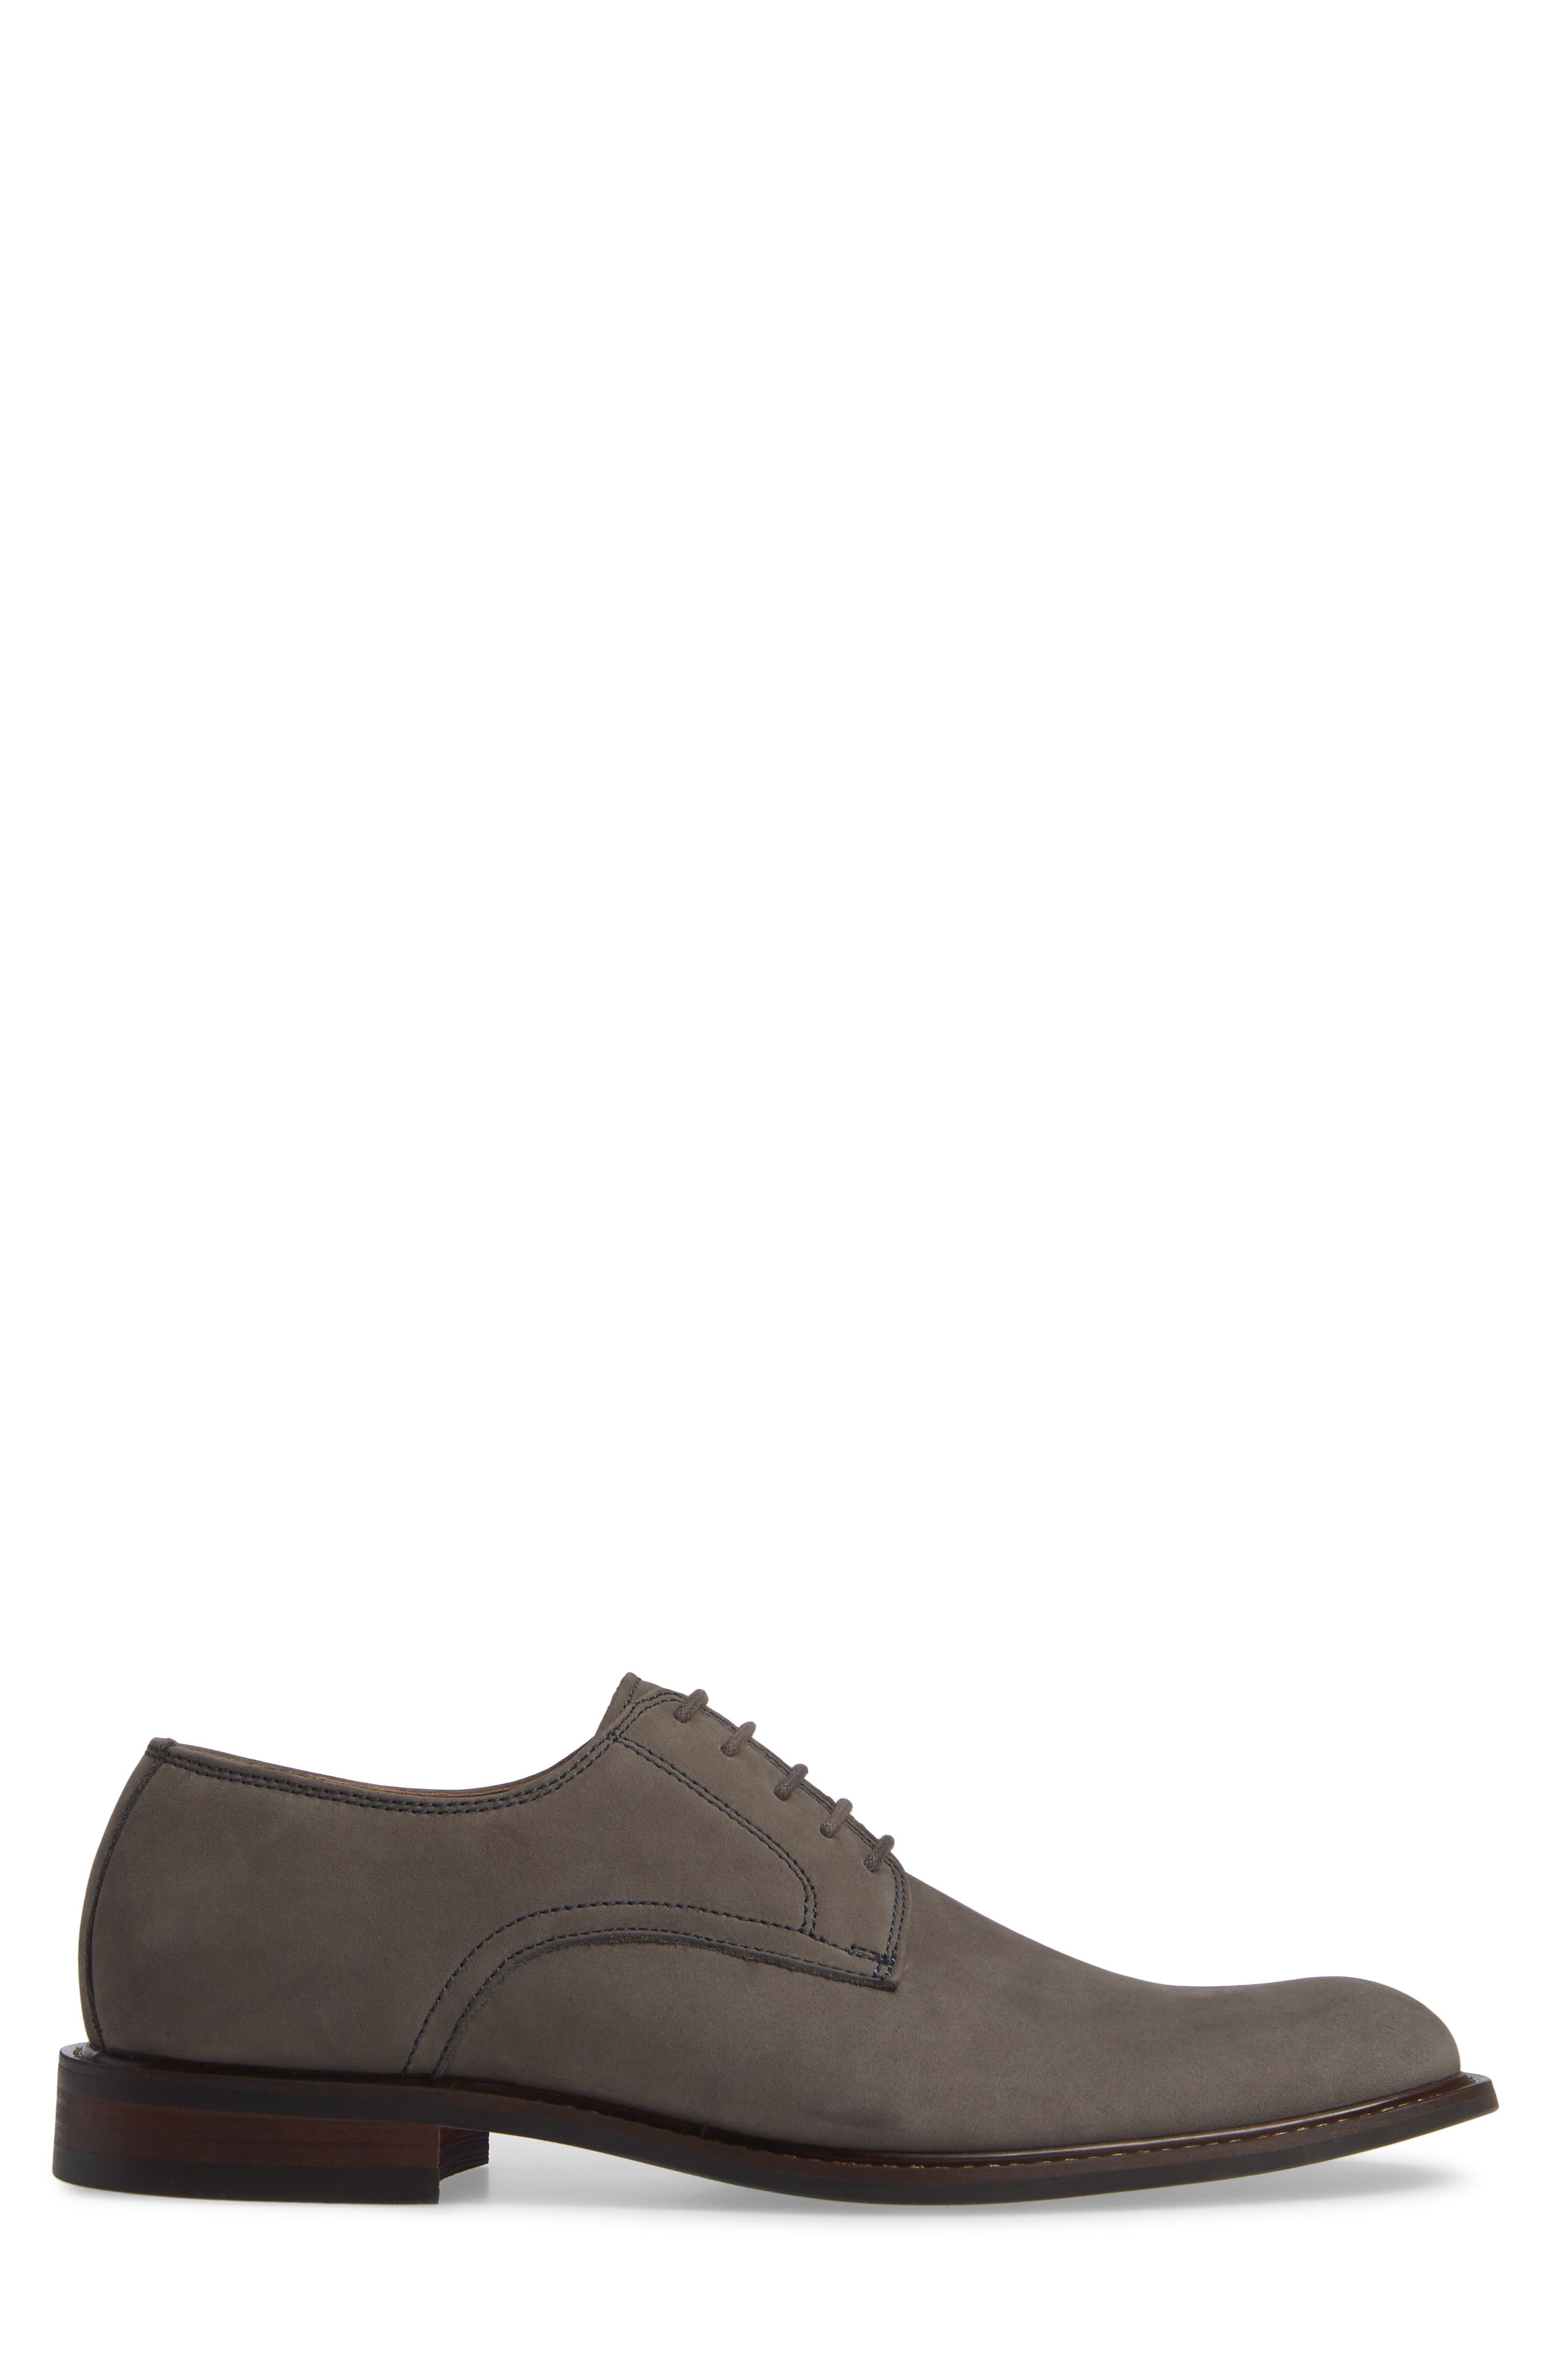 Richland Buck Shoe,                             Alternate thumbnail 3, color,                             GREY SUEDE